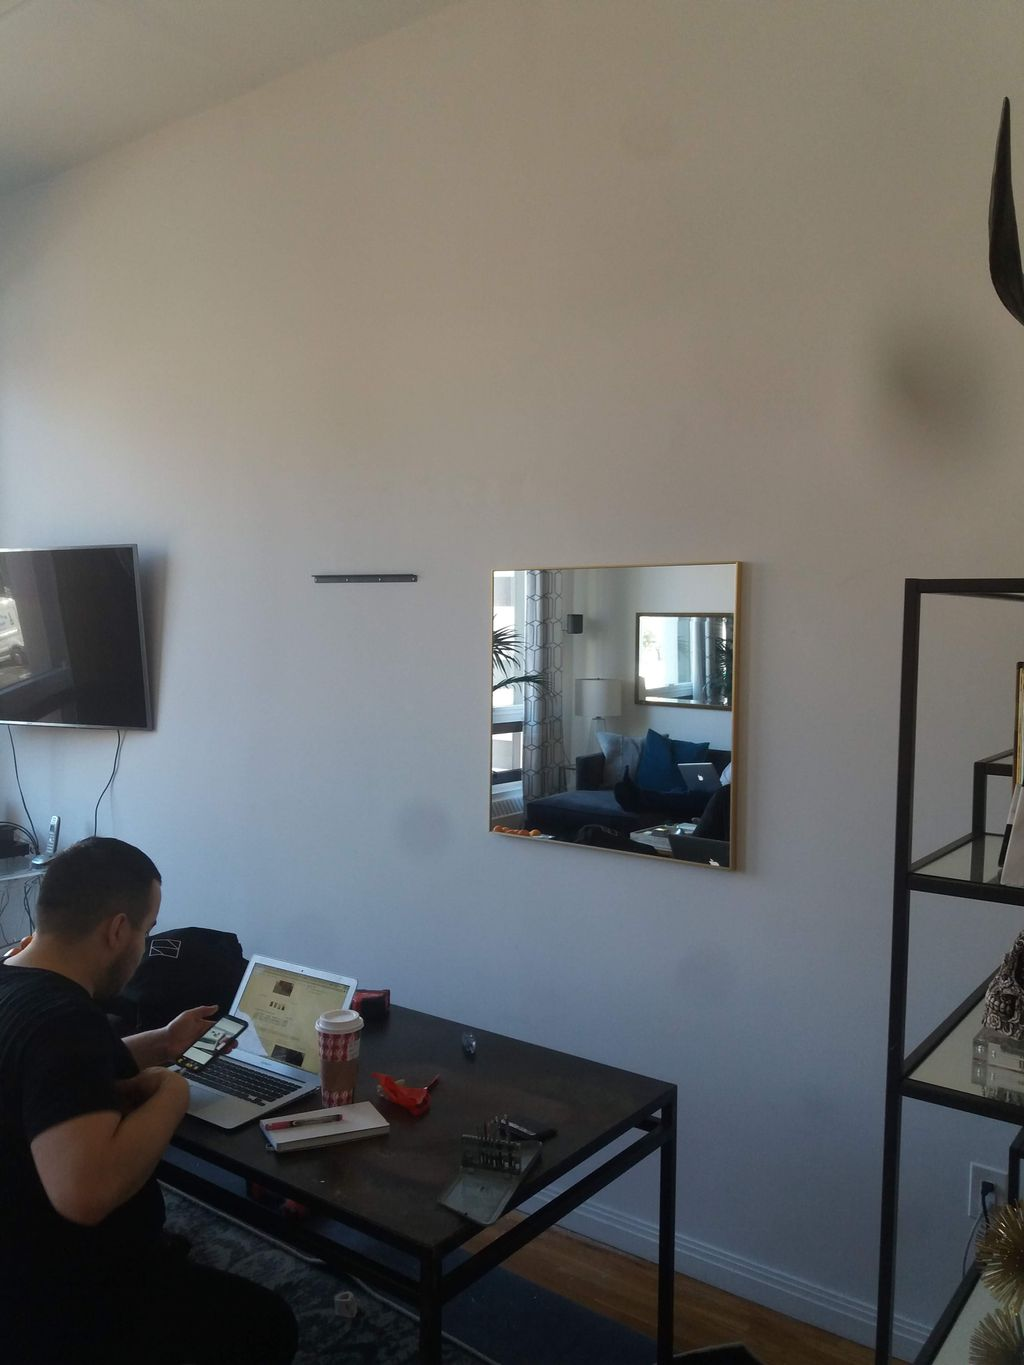 Mirrors Mounted